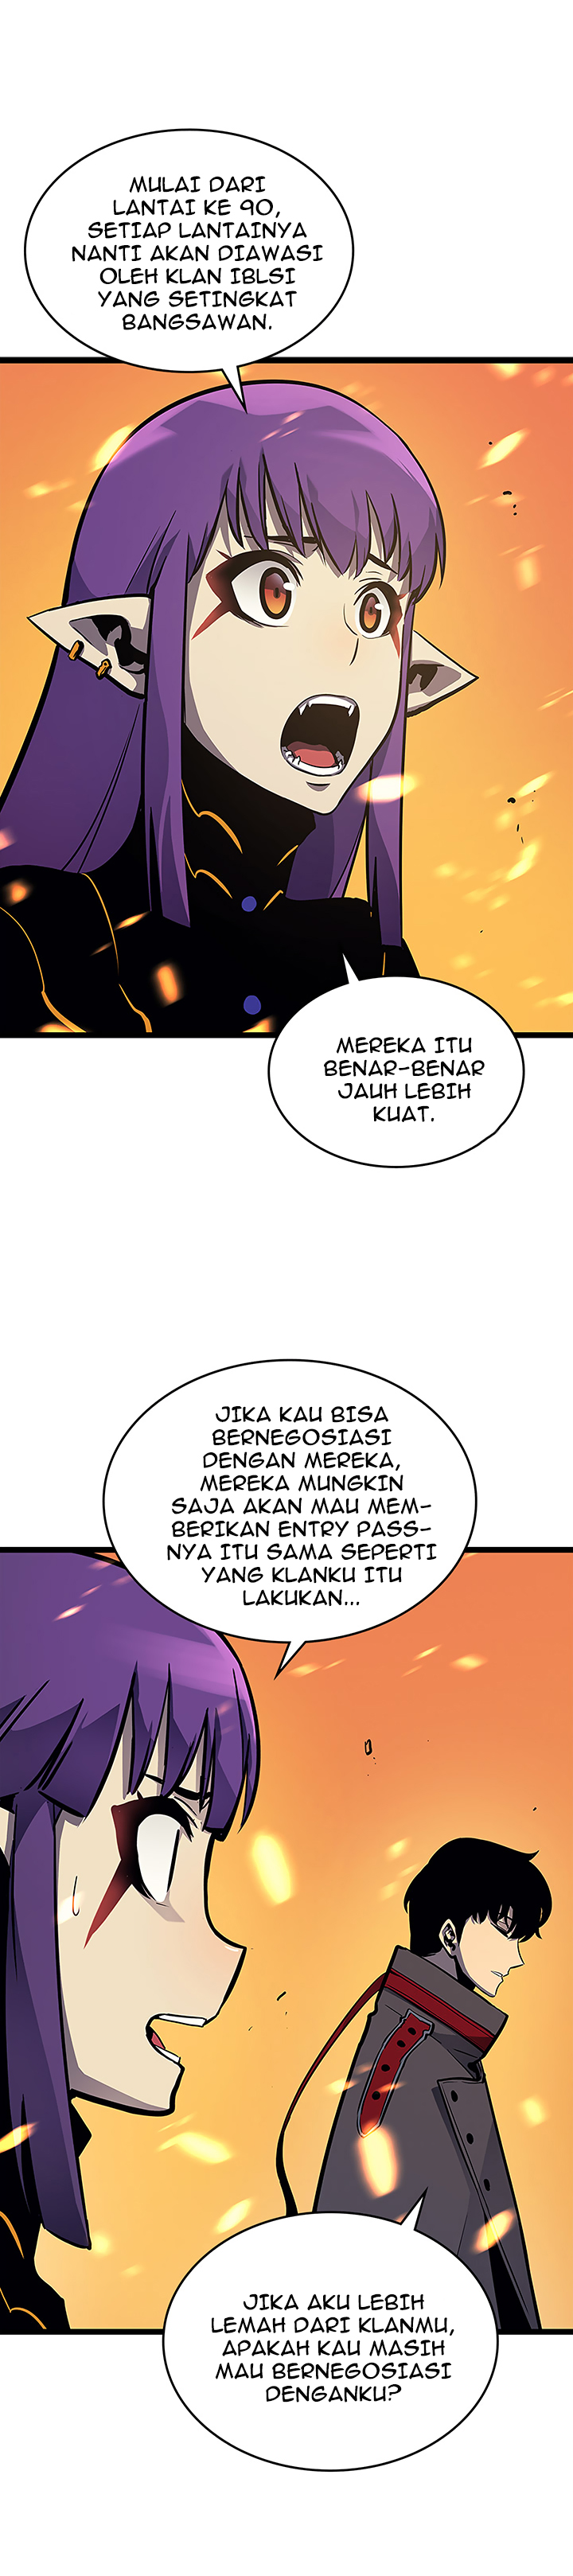 Solo Leveling Chapter 84 Indo gambar 26